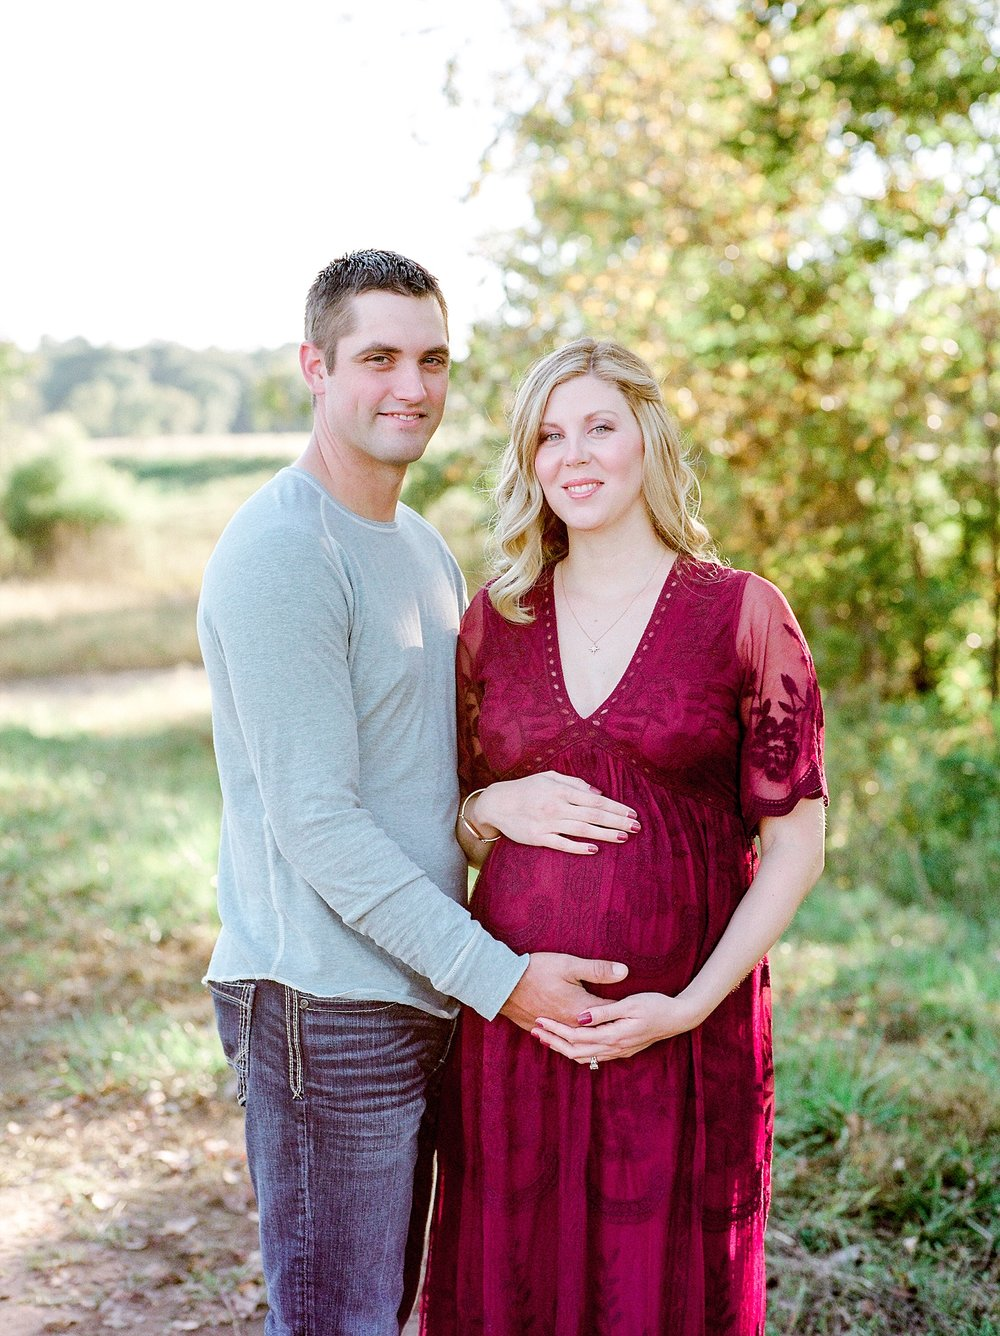 Sunset Maternity Session on Family Farm in Mid Missouri by Kelsi Kliethermes Photography_0010.jpg